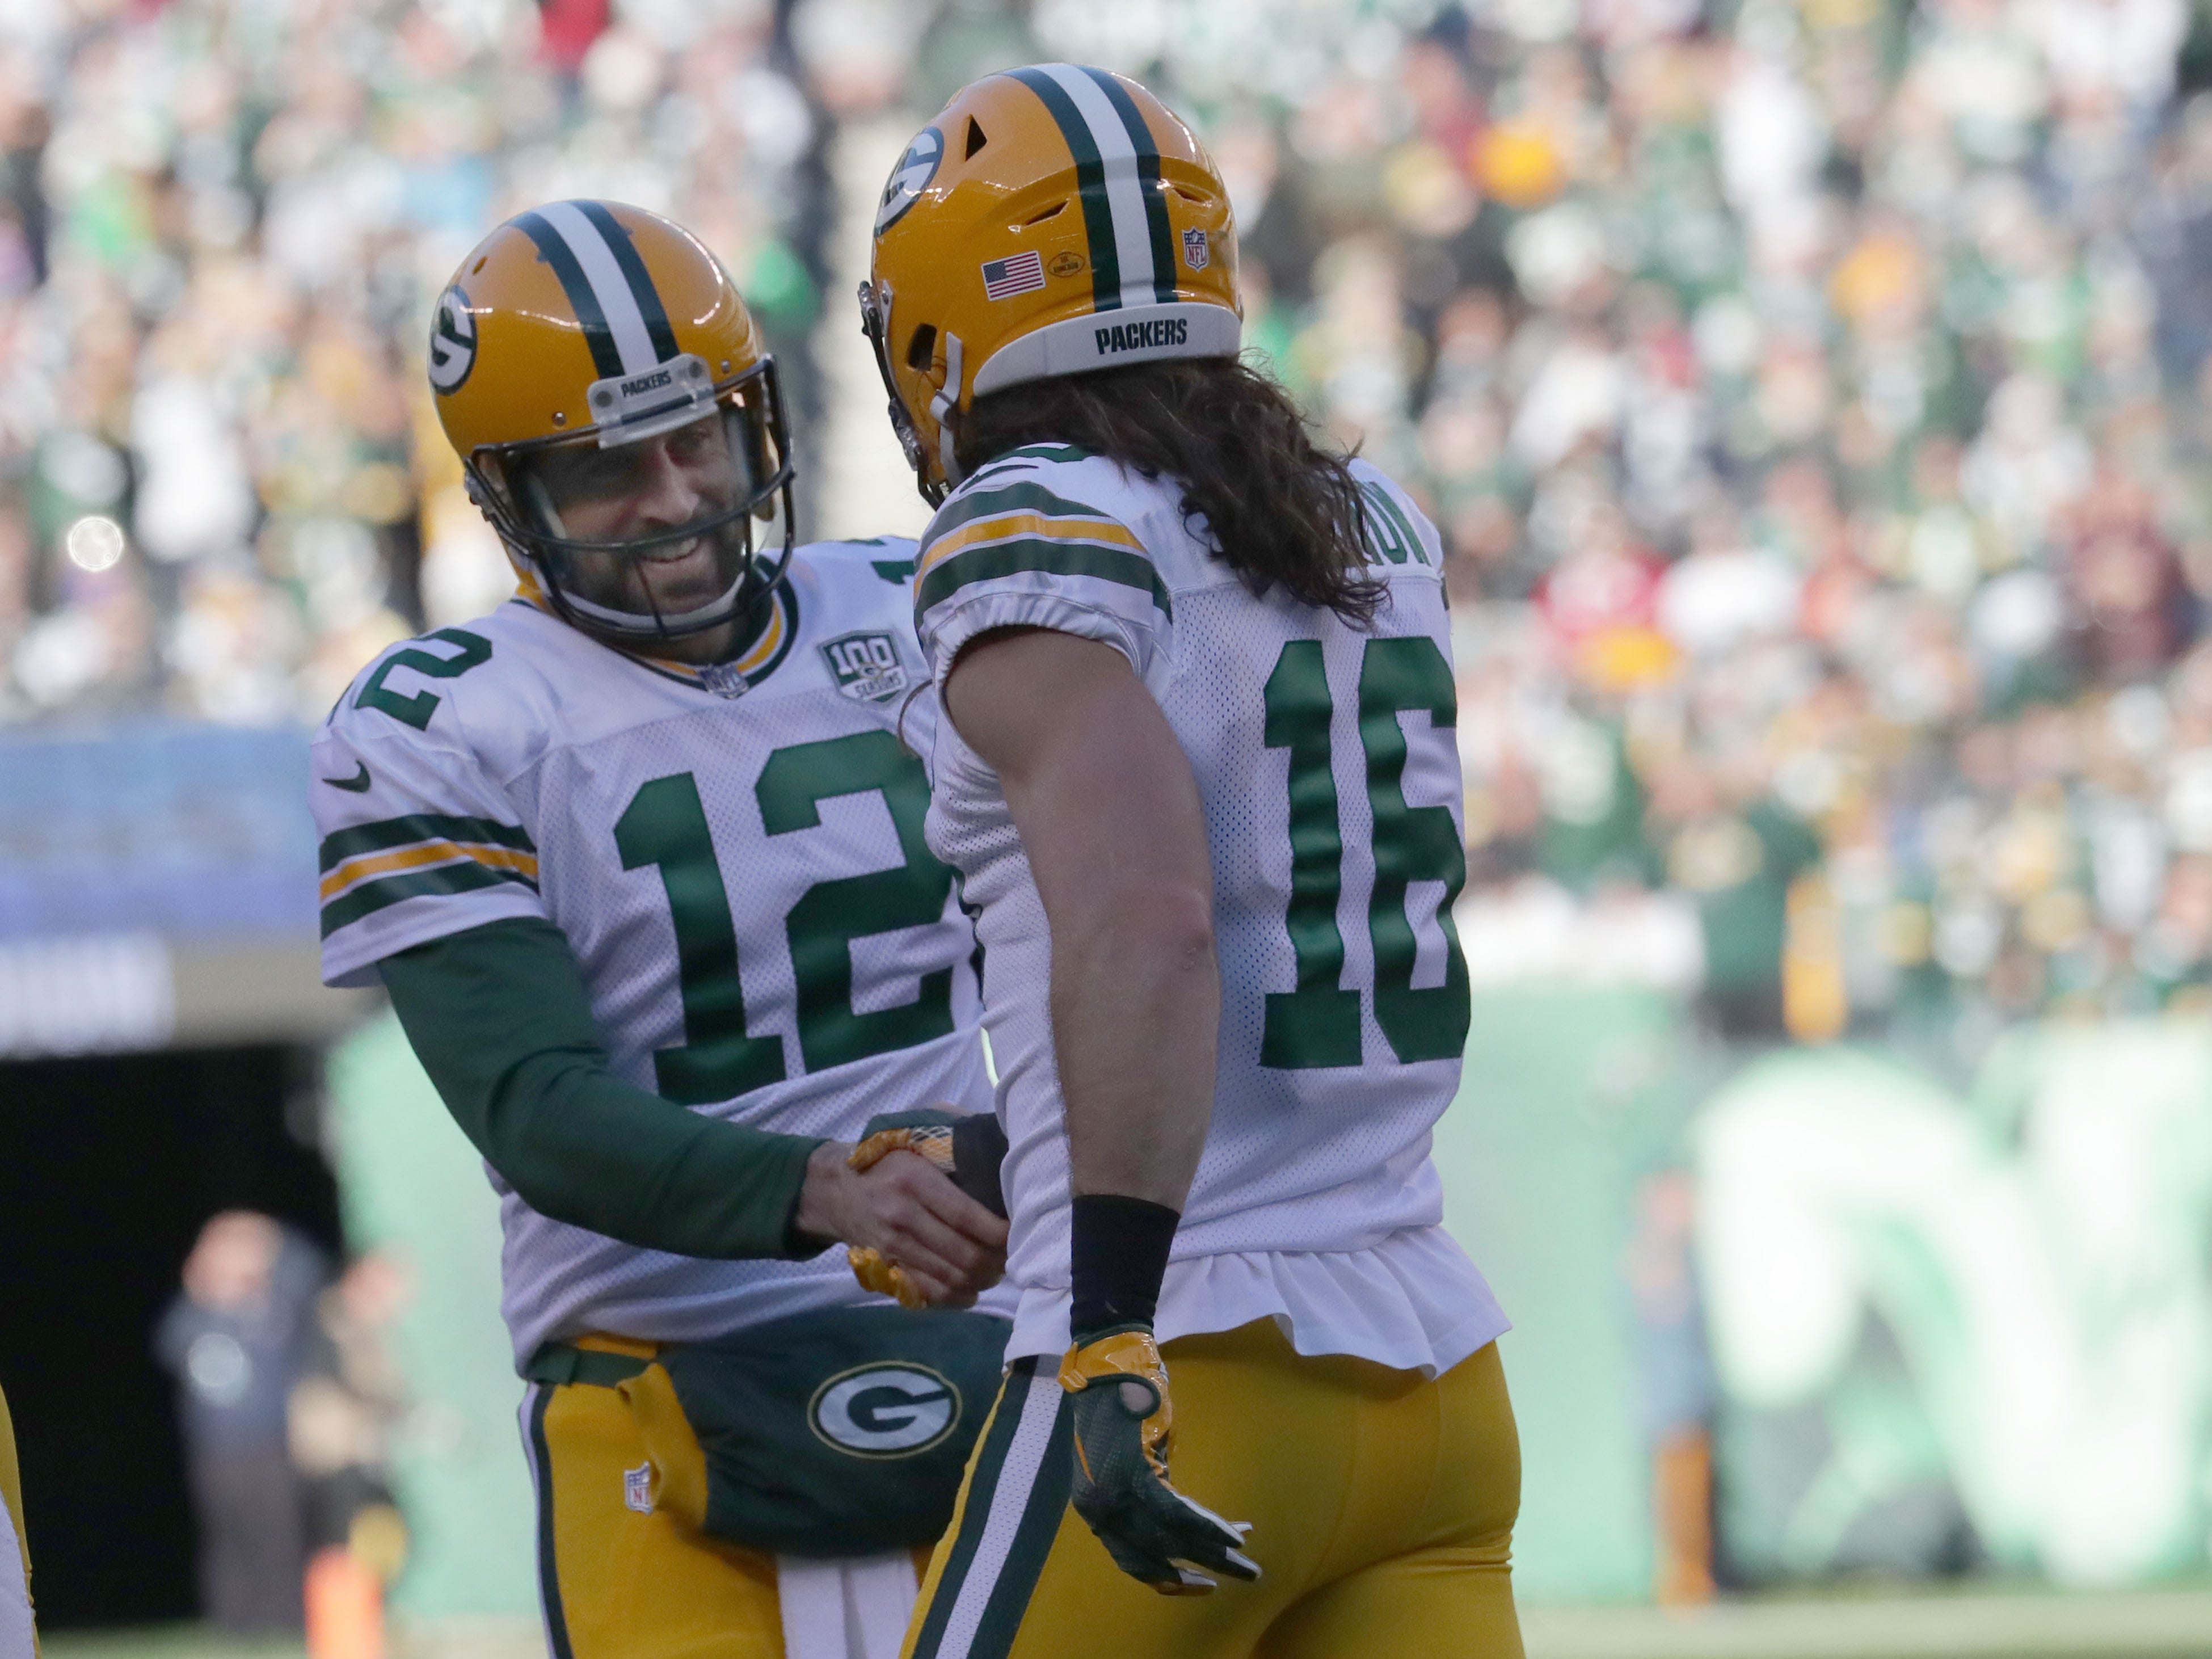 Green Bay Packers' Aaron Rodgers celebrates with Jake Kumerow after his touchdown catch during first half of the Green Bay Packers game against the New York Jets at MetLife Stadium Sunday, Dec. 23, 2018, in East Rutherford.